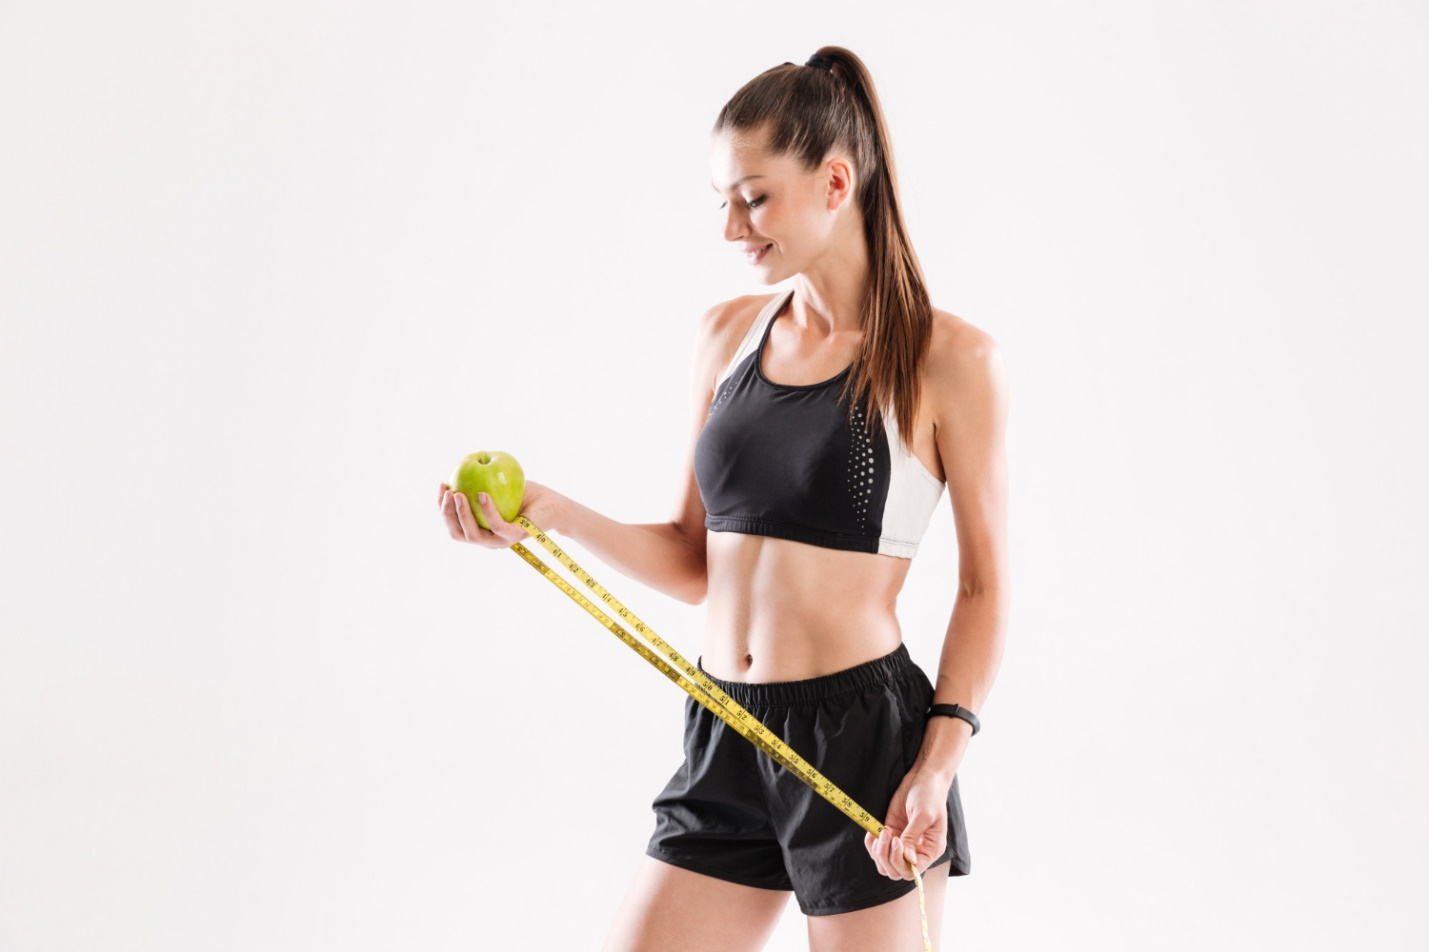 C:\Users\Dell\Downloads\portrait-happy-healthy-fitness-woman-holding-green-apple.jpg